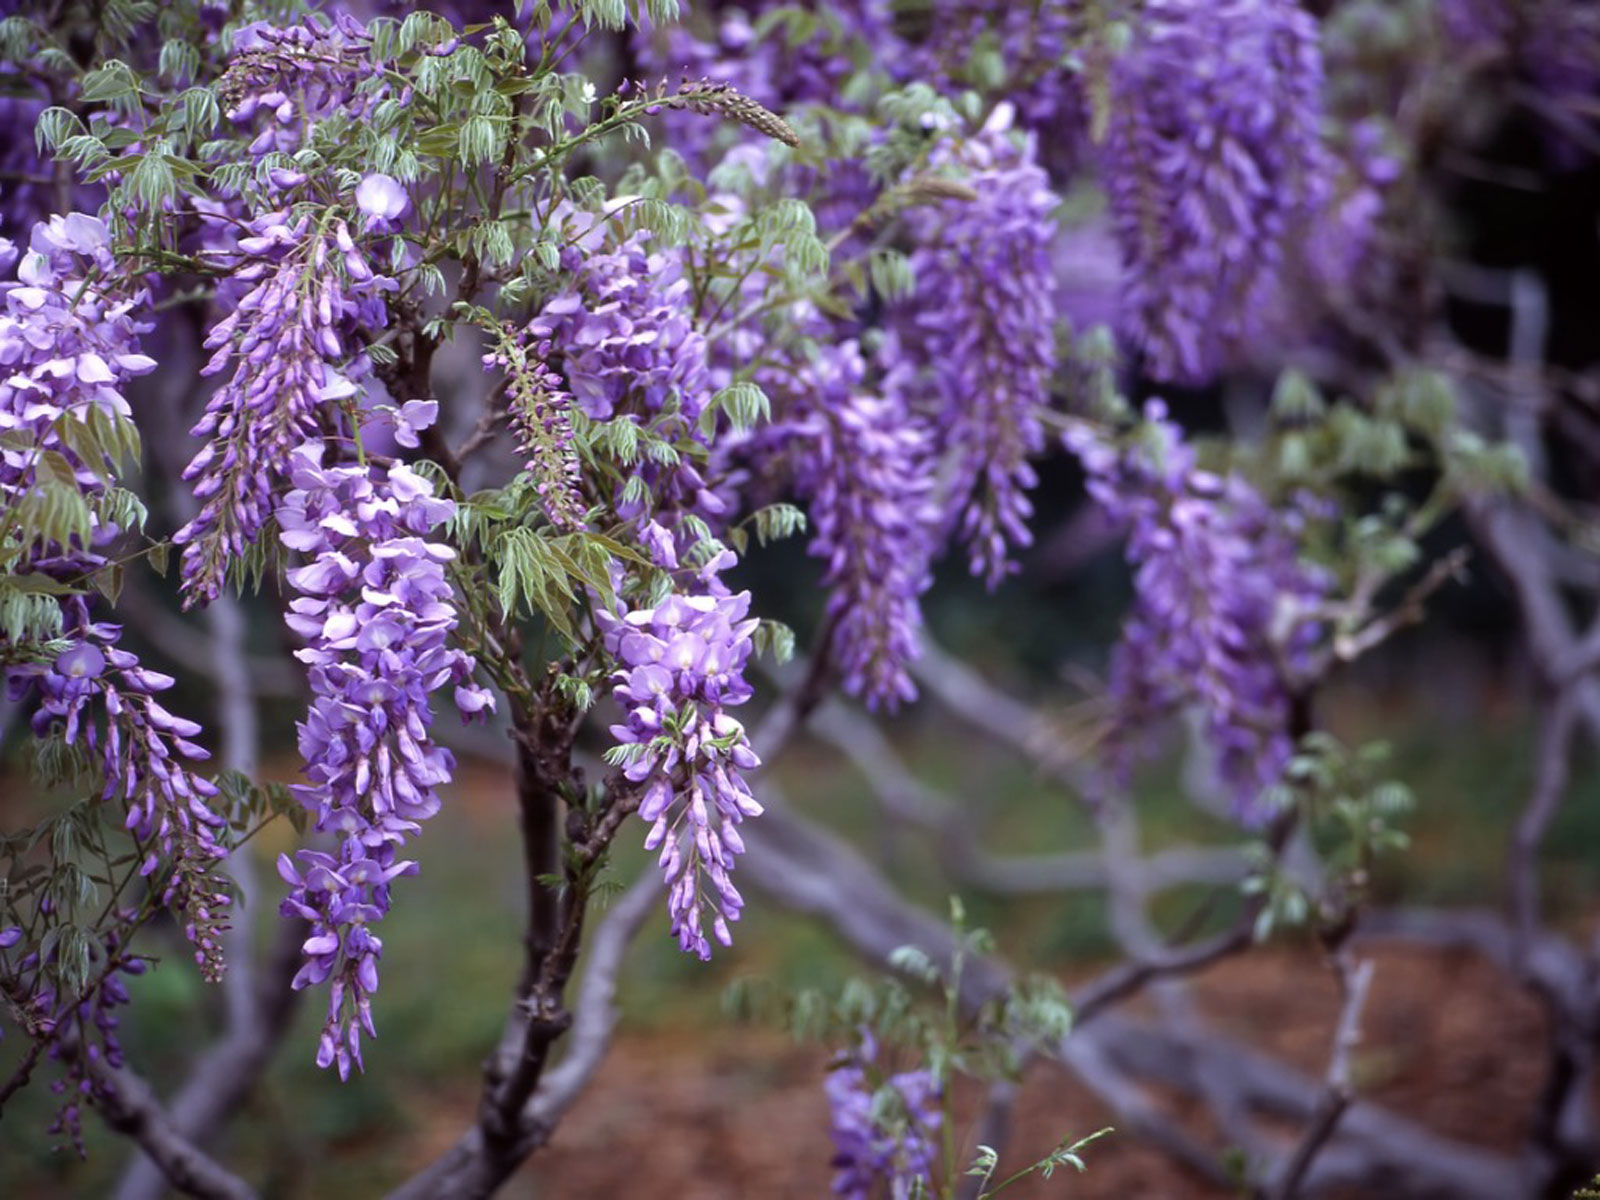 Wisteria Hysteria I Cannot Wait To Make A Flower Essence From Wisteria This Summer I Make Dosage Beautiful Flowers Wallpapers Purple Wisteria Wisteria Tree